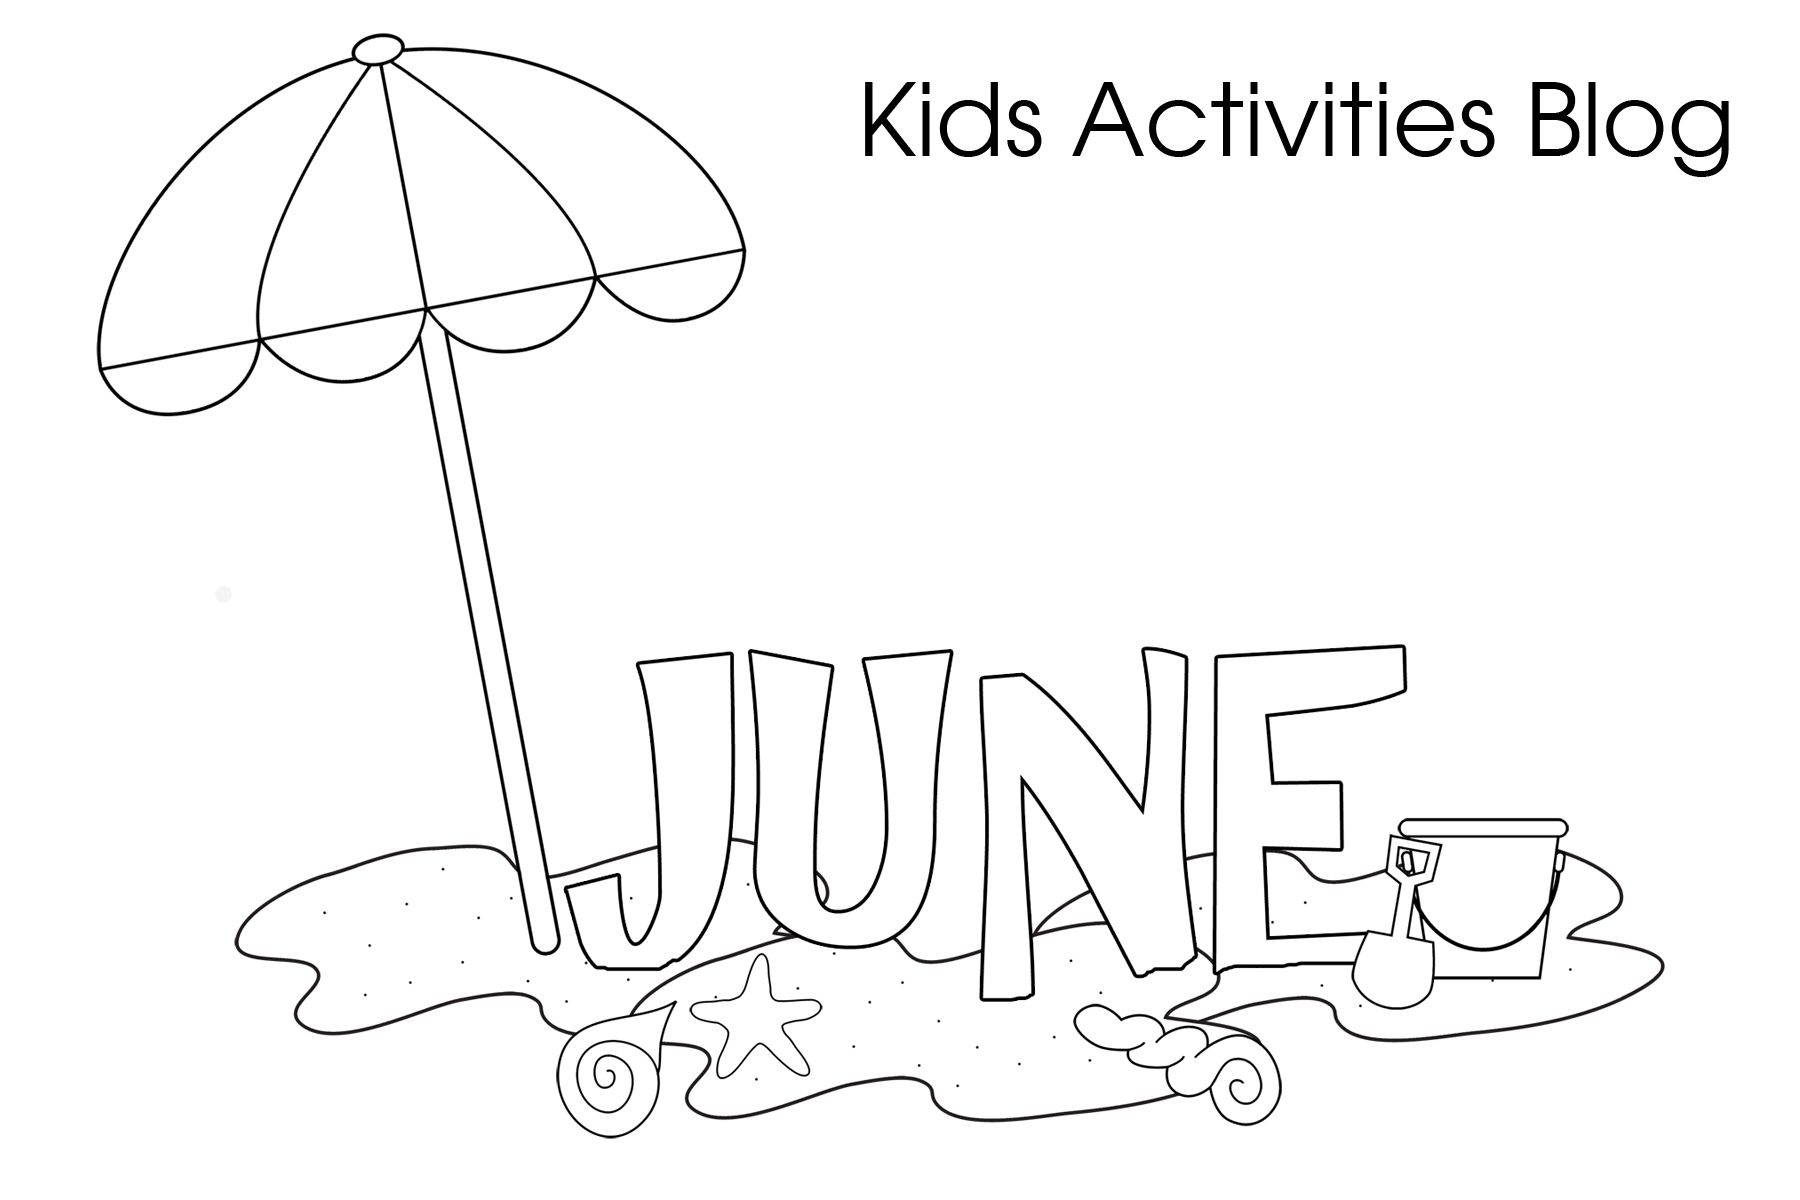 Beach Fun June Coloring Pages For Kids Pre K Kinder Coloring